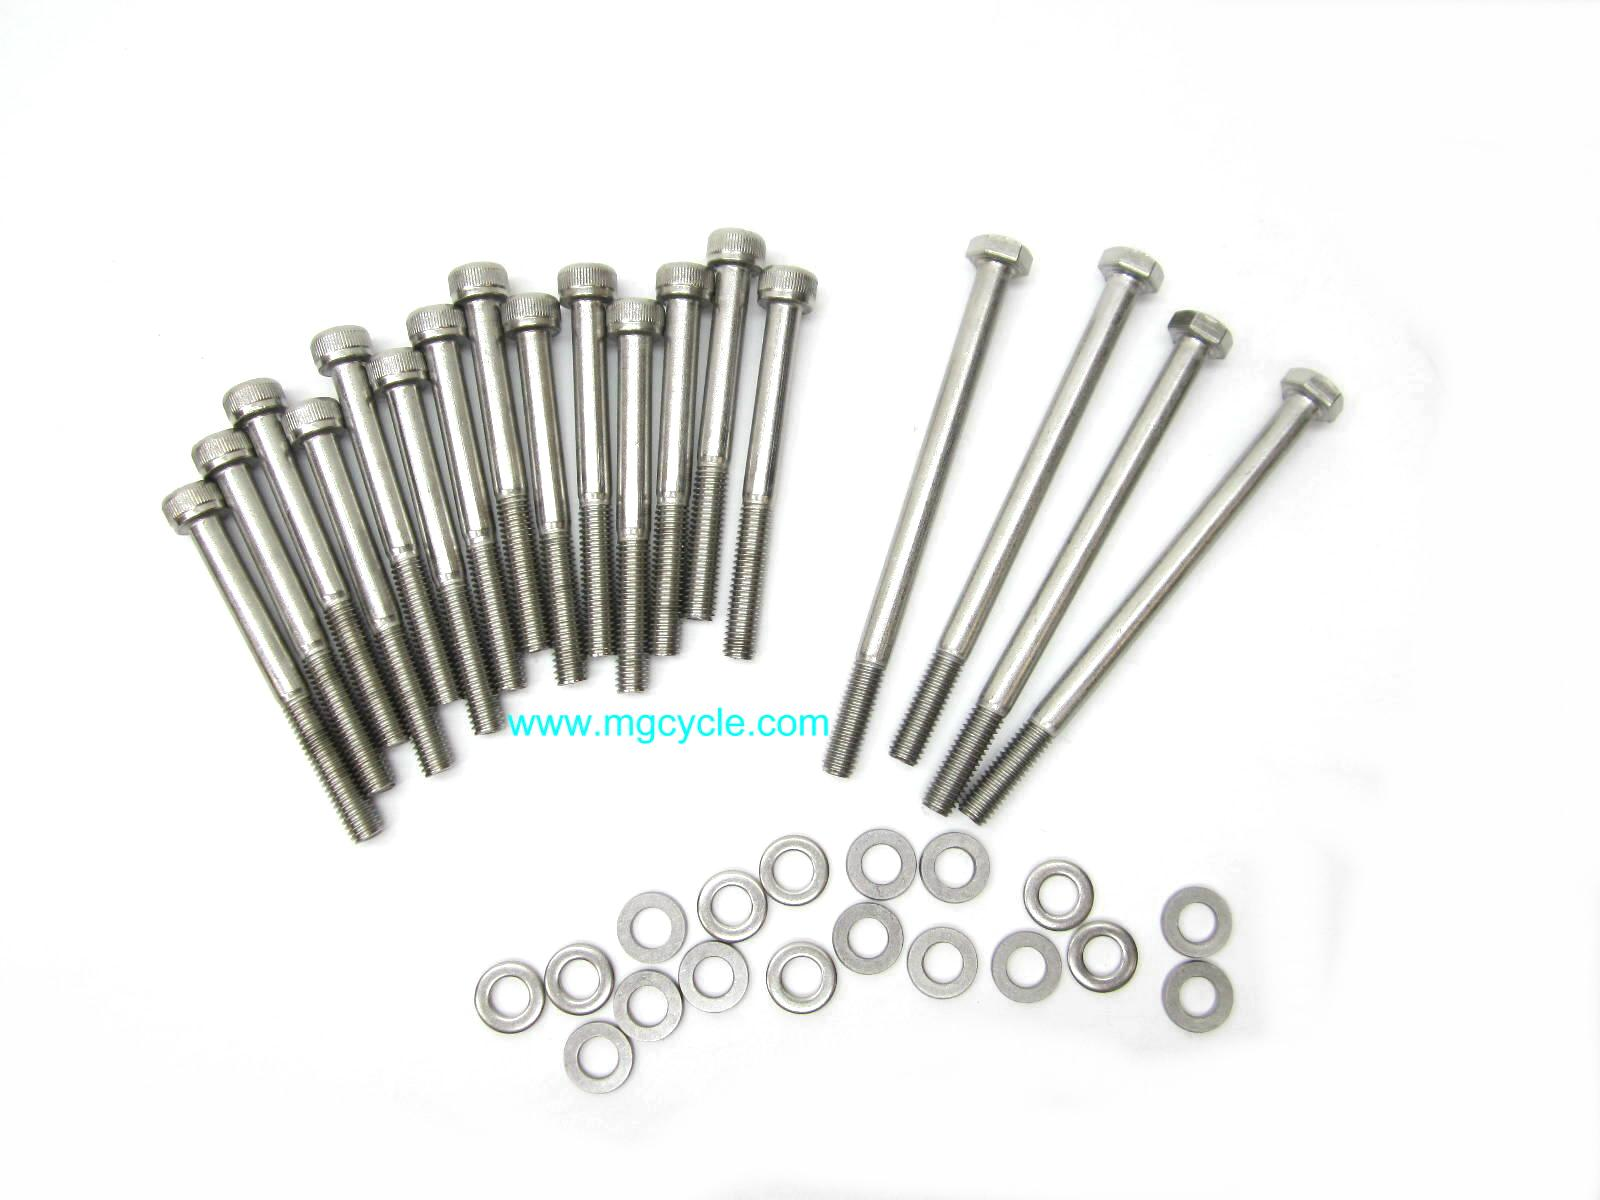 Stainless bolt kit, oil pan with filter and spacer,